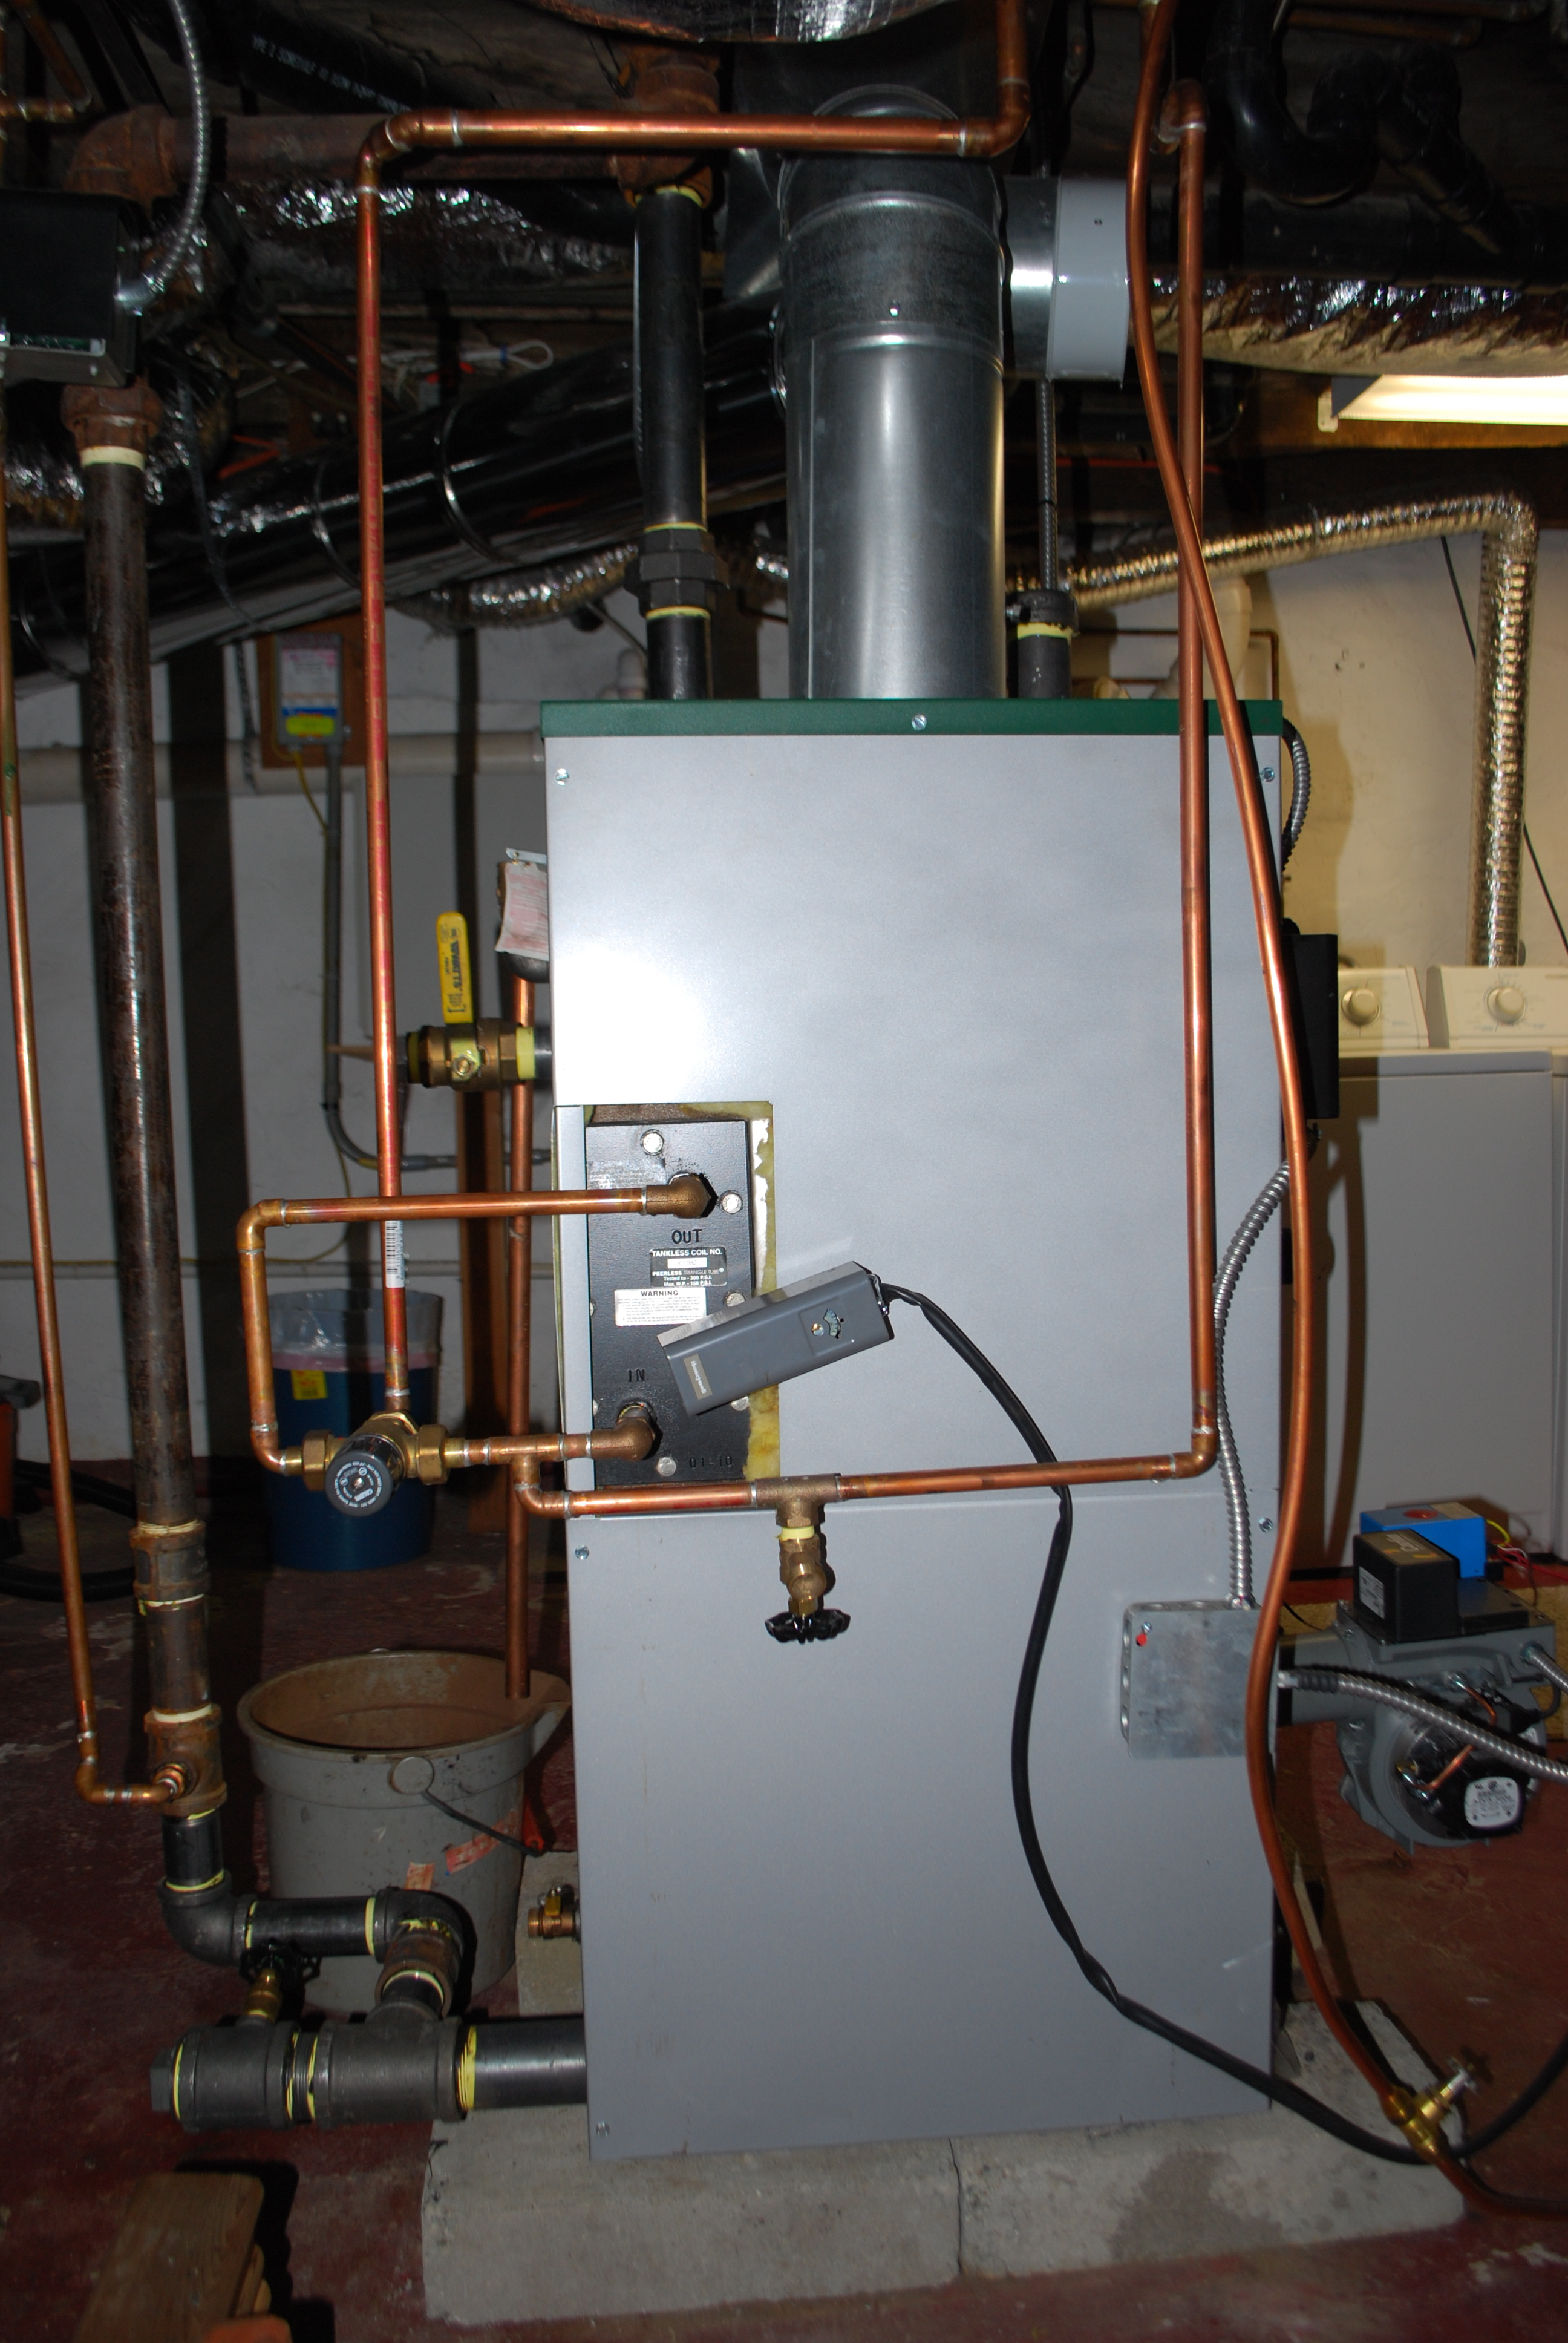 Improperly Installed Steam Boiler? — Heating Help: The Wall